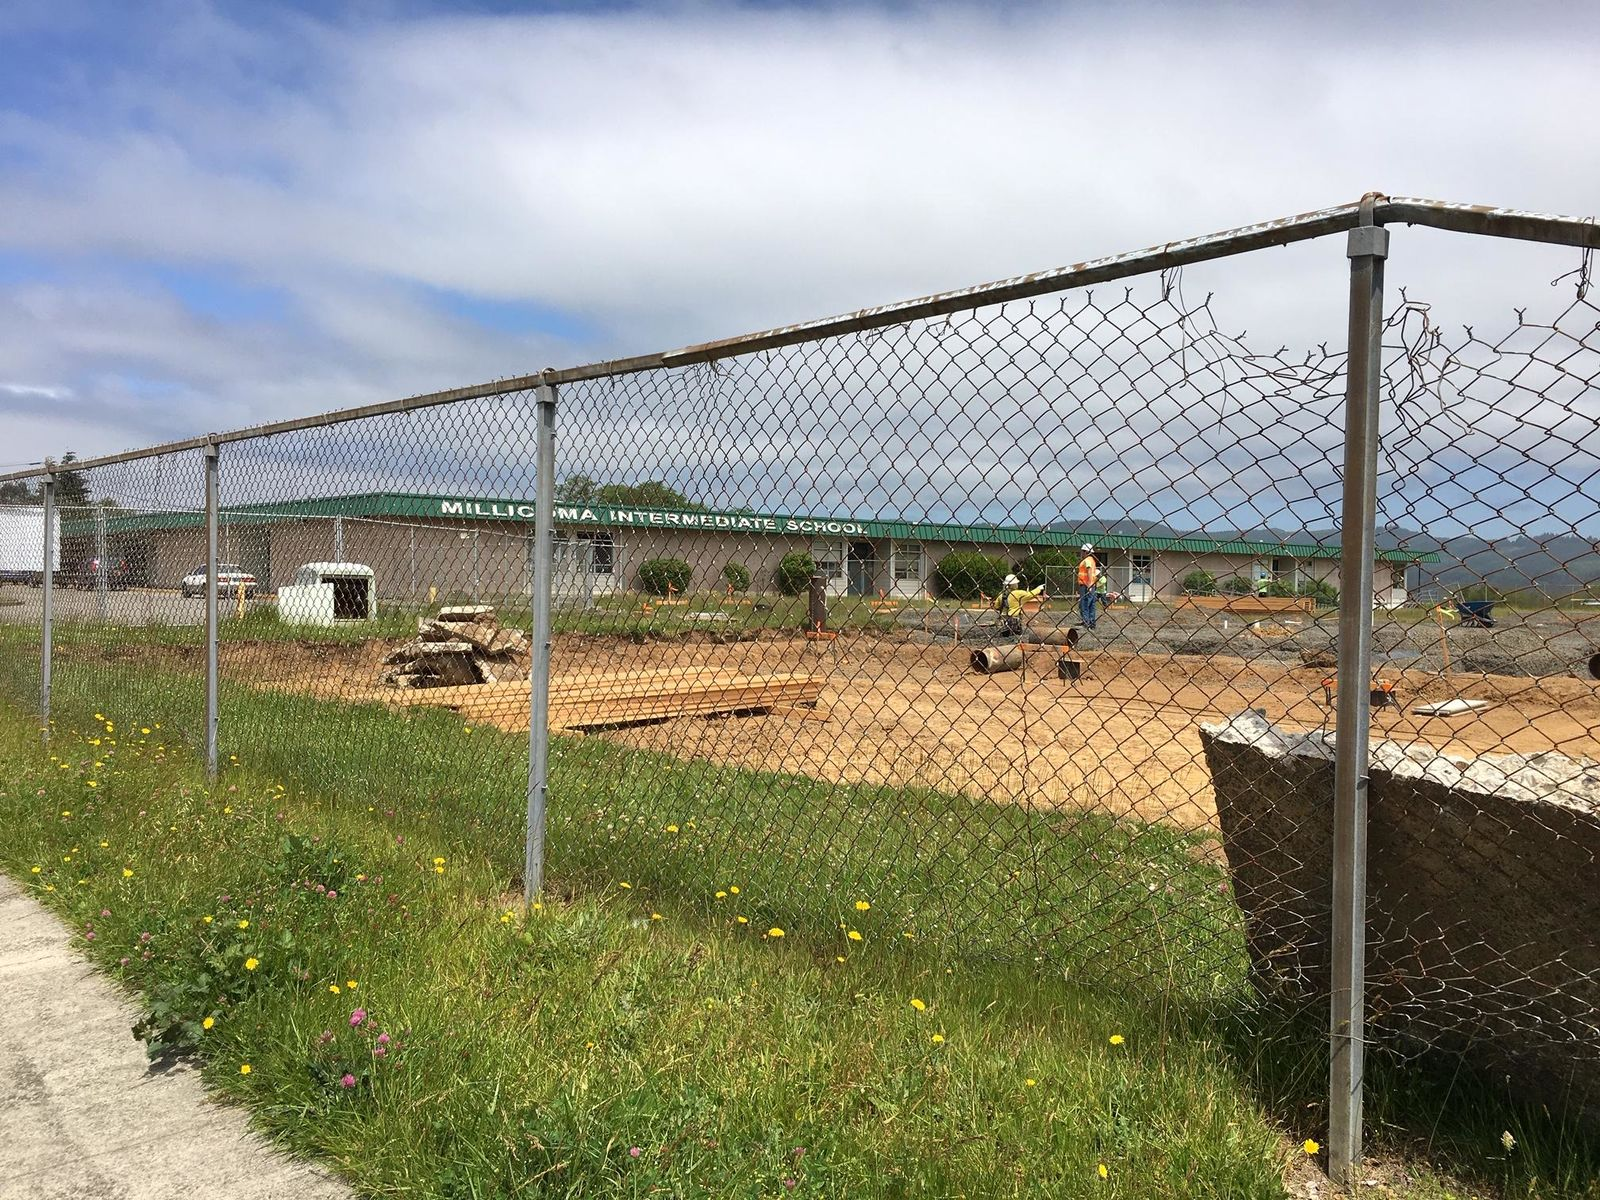 The Coos Bay School District is building new schools and making major improvements to existing facilities, June 13, 2019. (SBG)